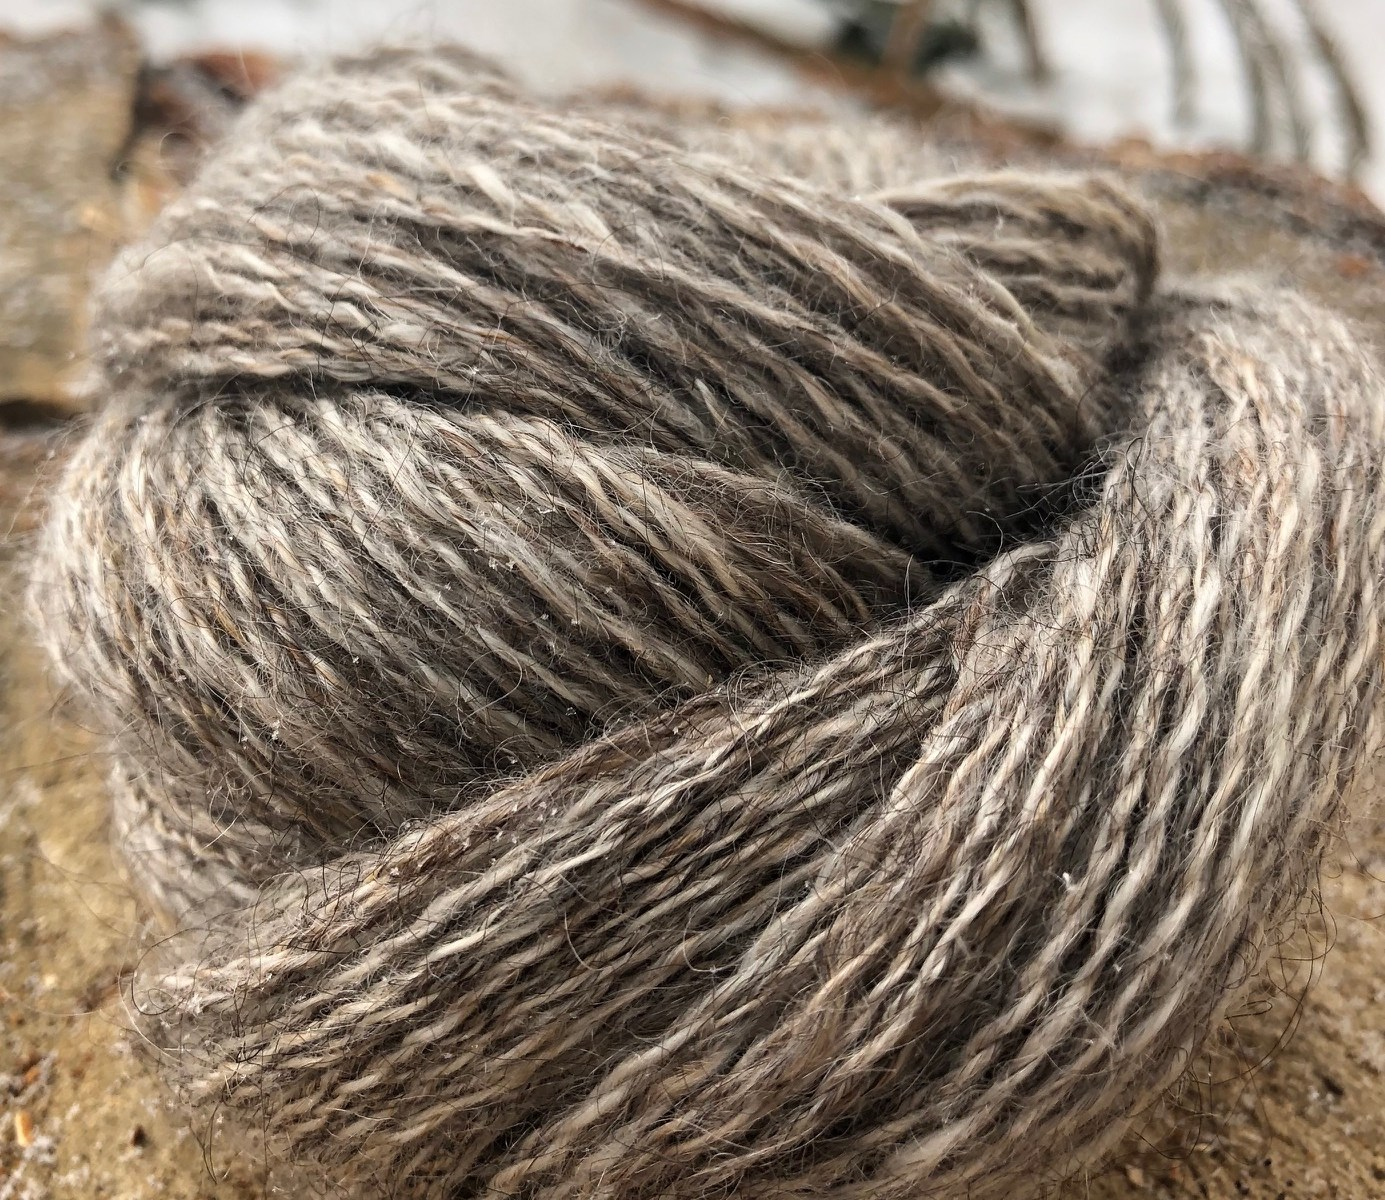 A skein of grey yarn rolled up into a bundle.